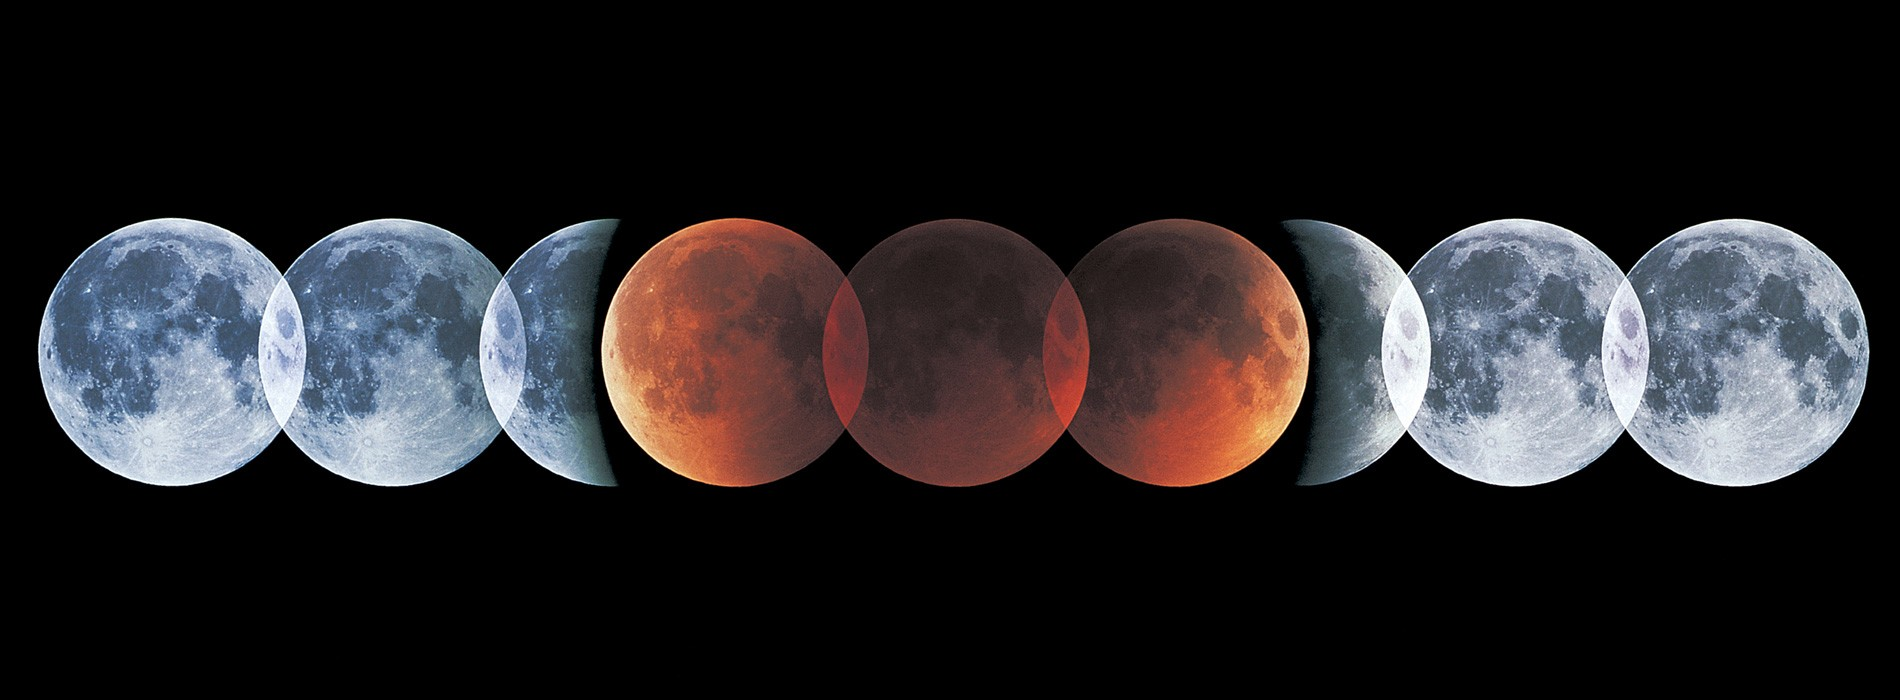 The Lunar Eclipse and the Prayer of Signs